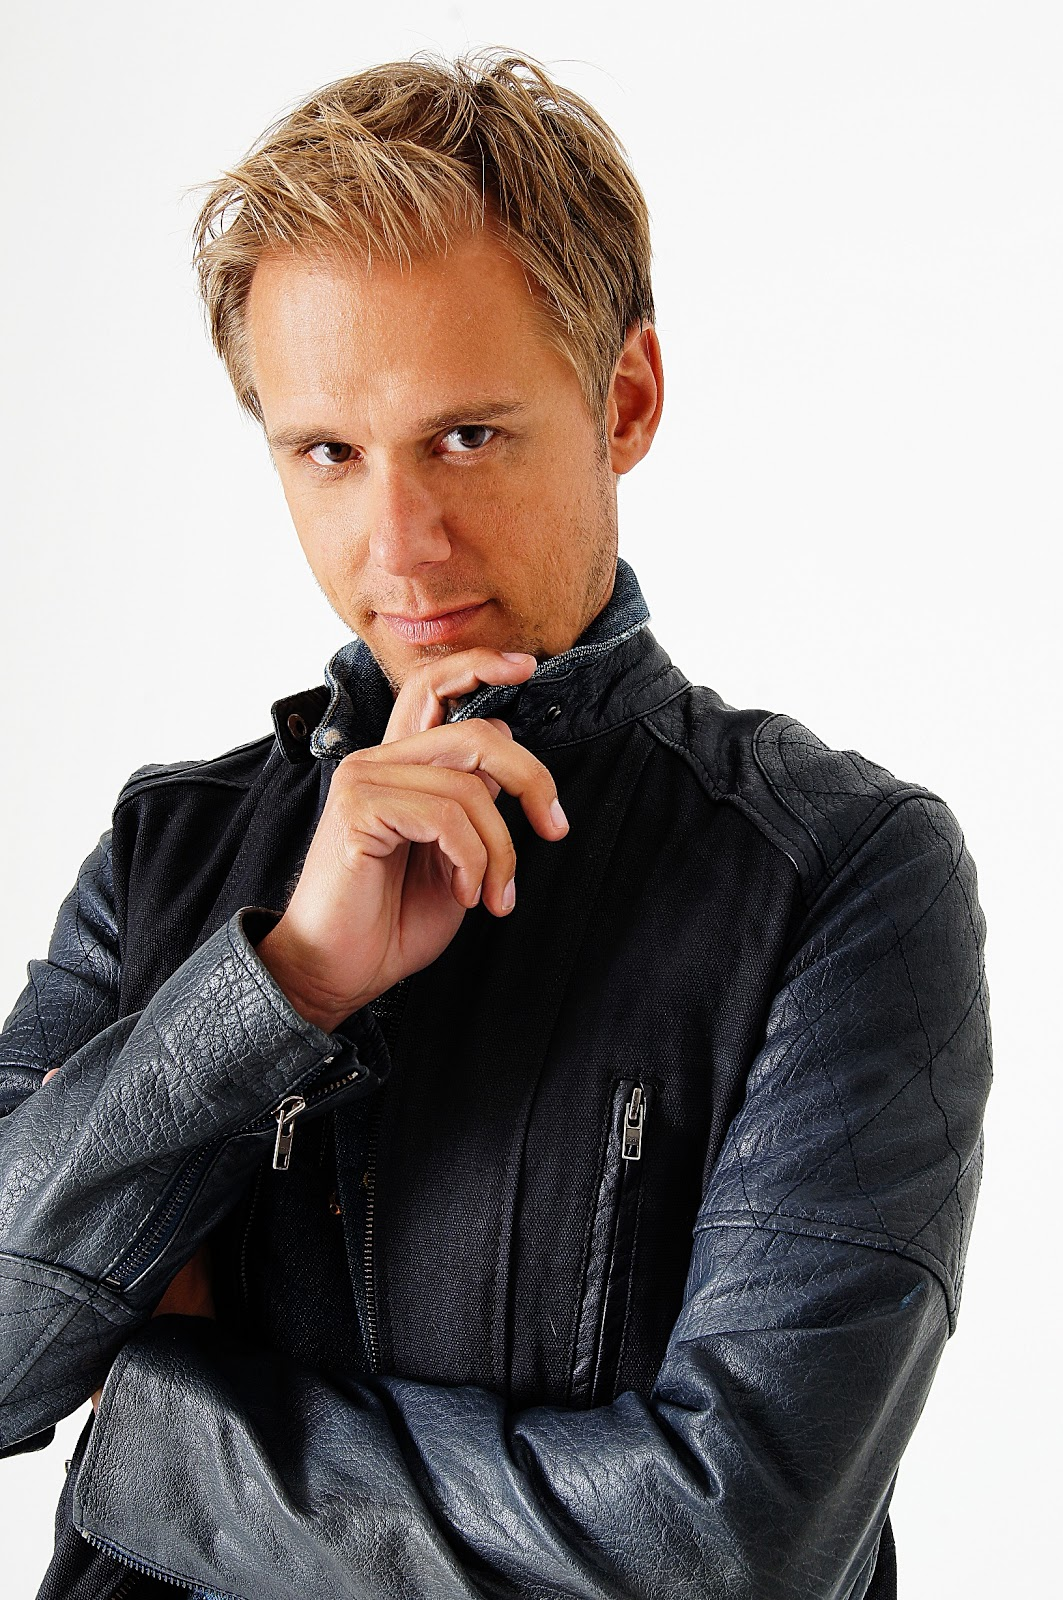 Michiekins Fashion Lifestyle And Mummy Blog 02 07 13 Jaket Hoodie Dj Armin Van Buuren 6